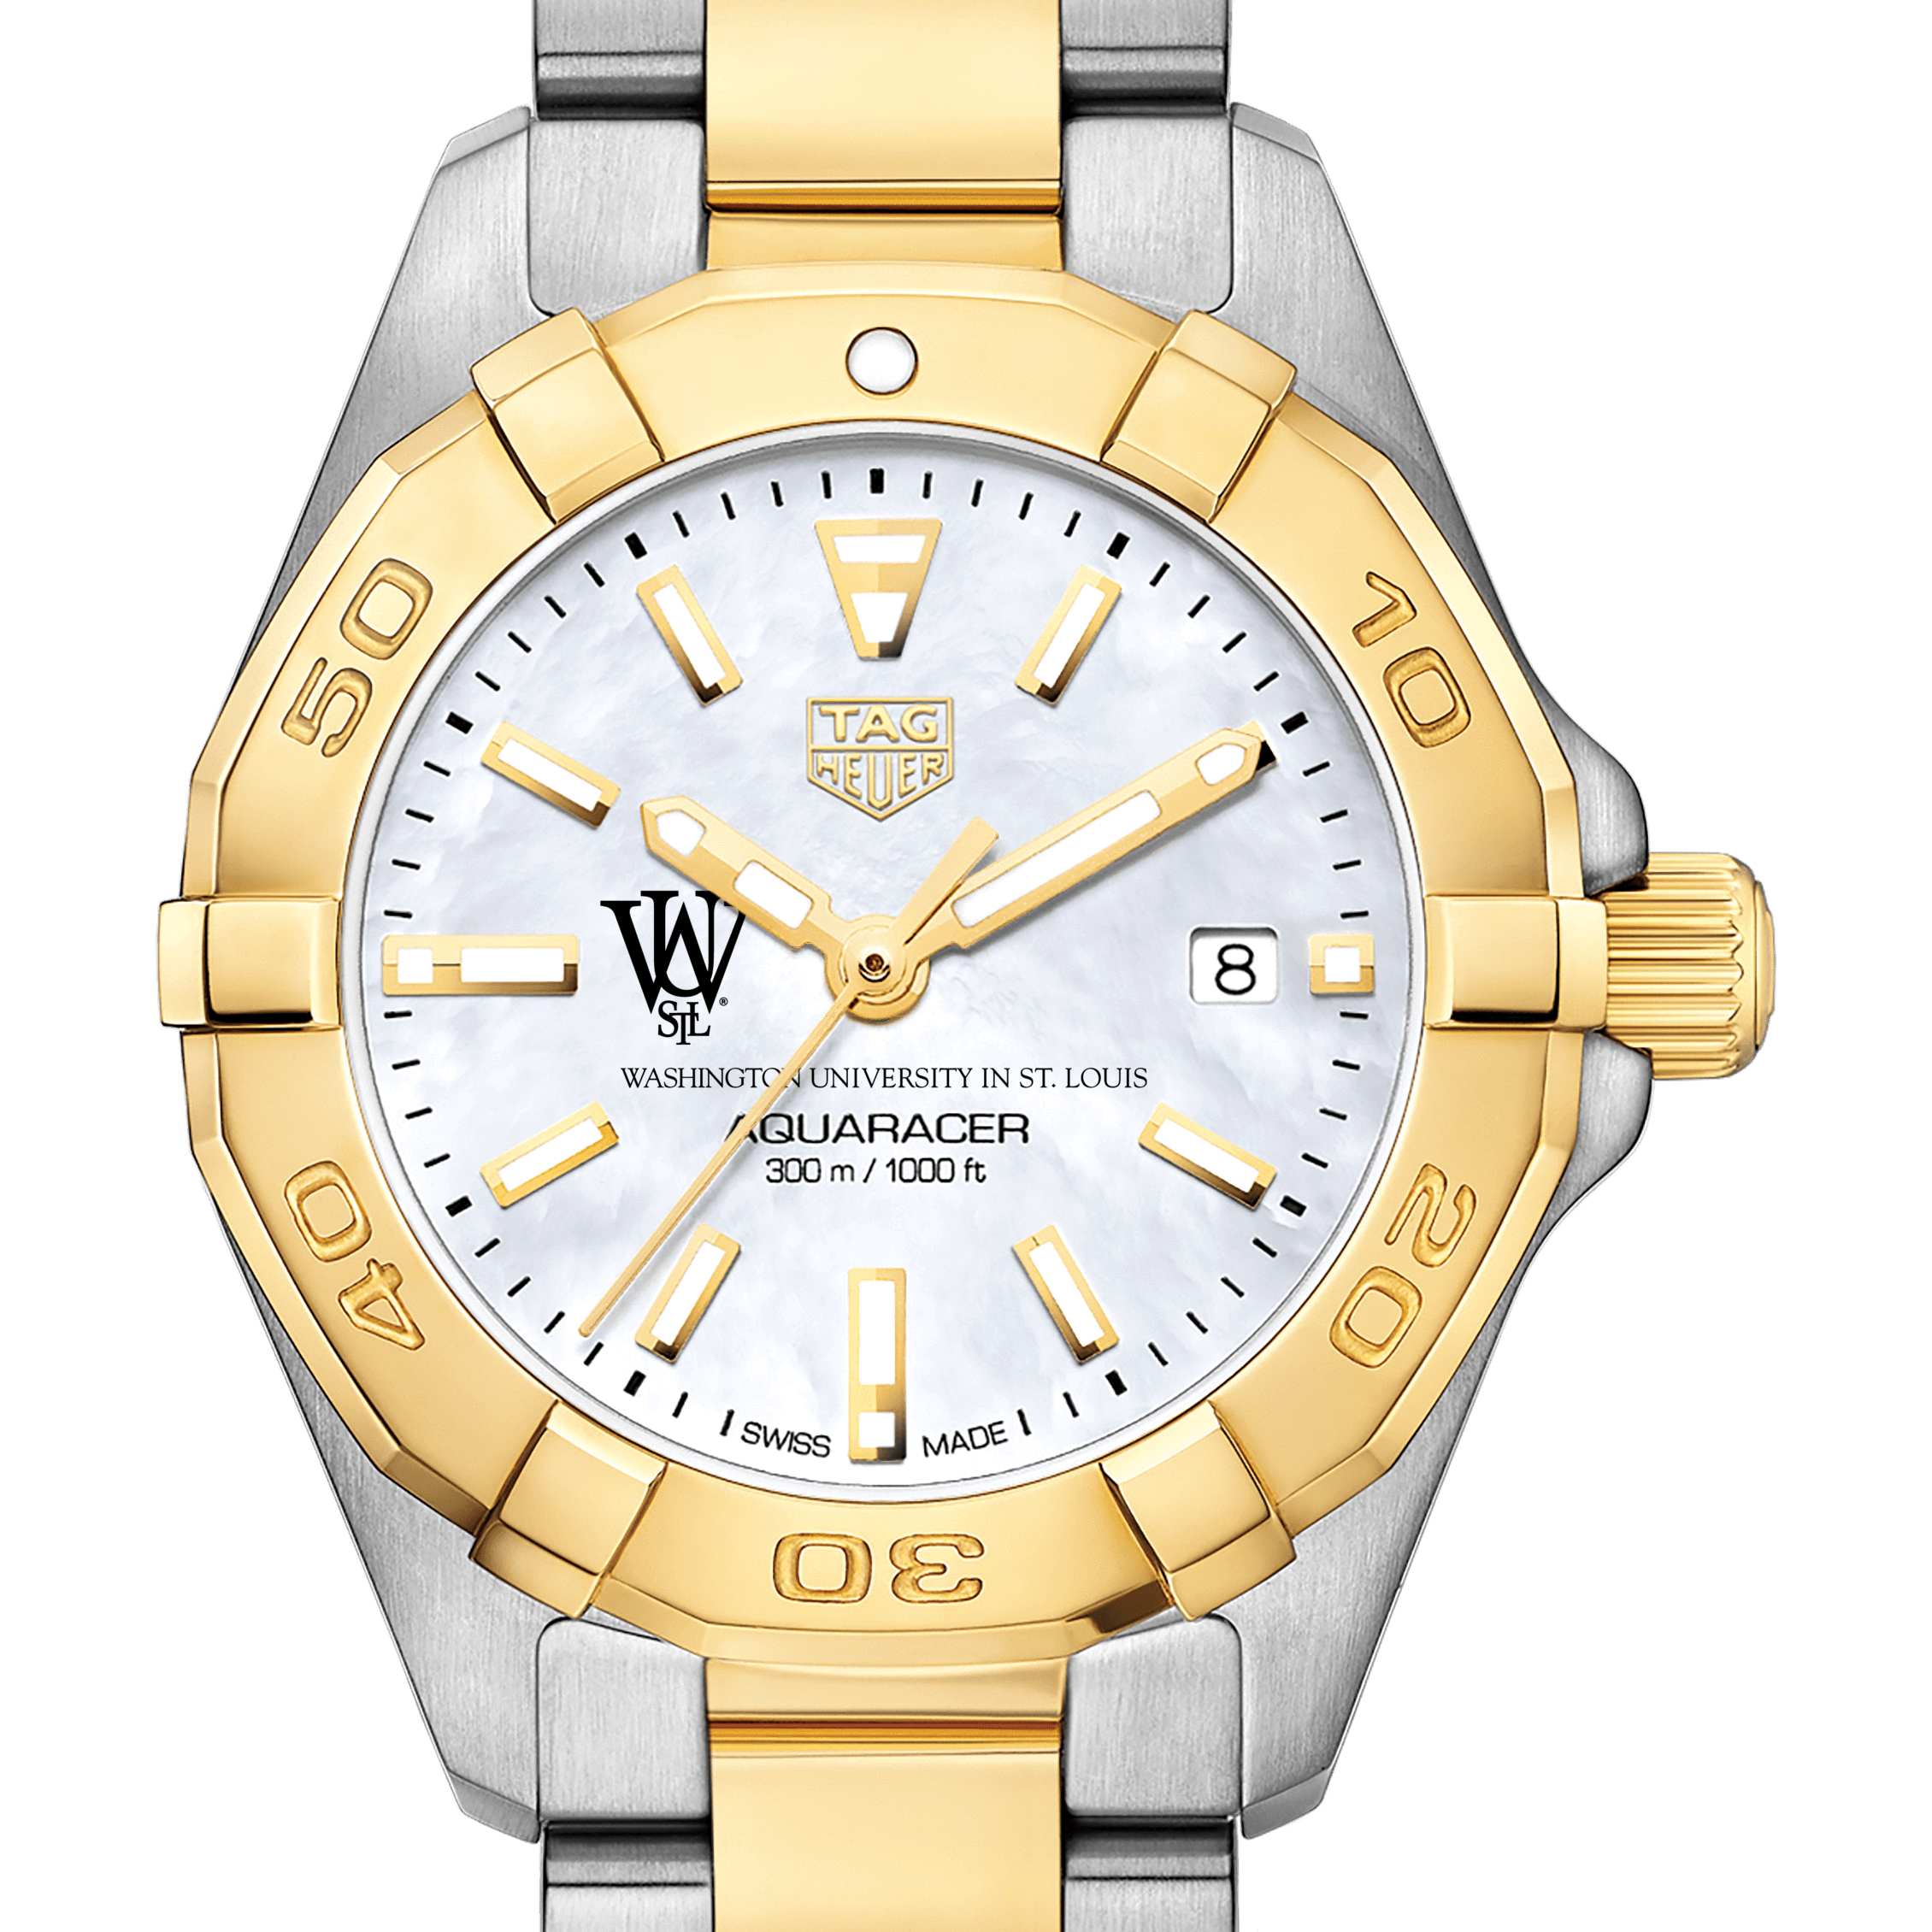 WUSTL TAG Heuer Two-Tone Aquaracer for Women